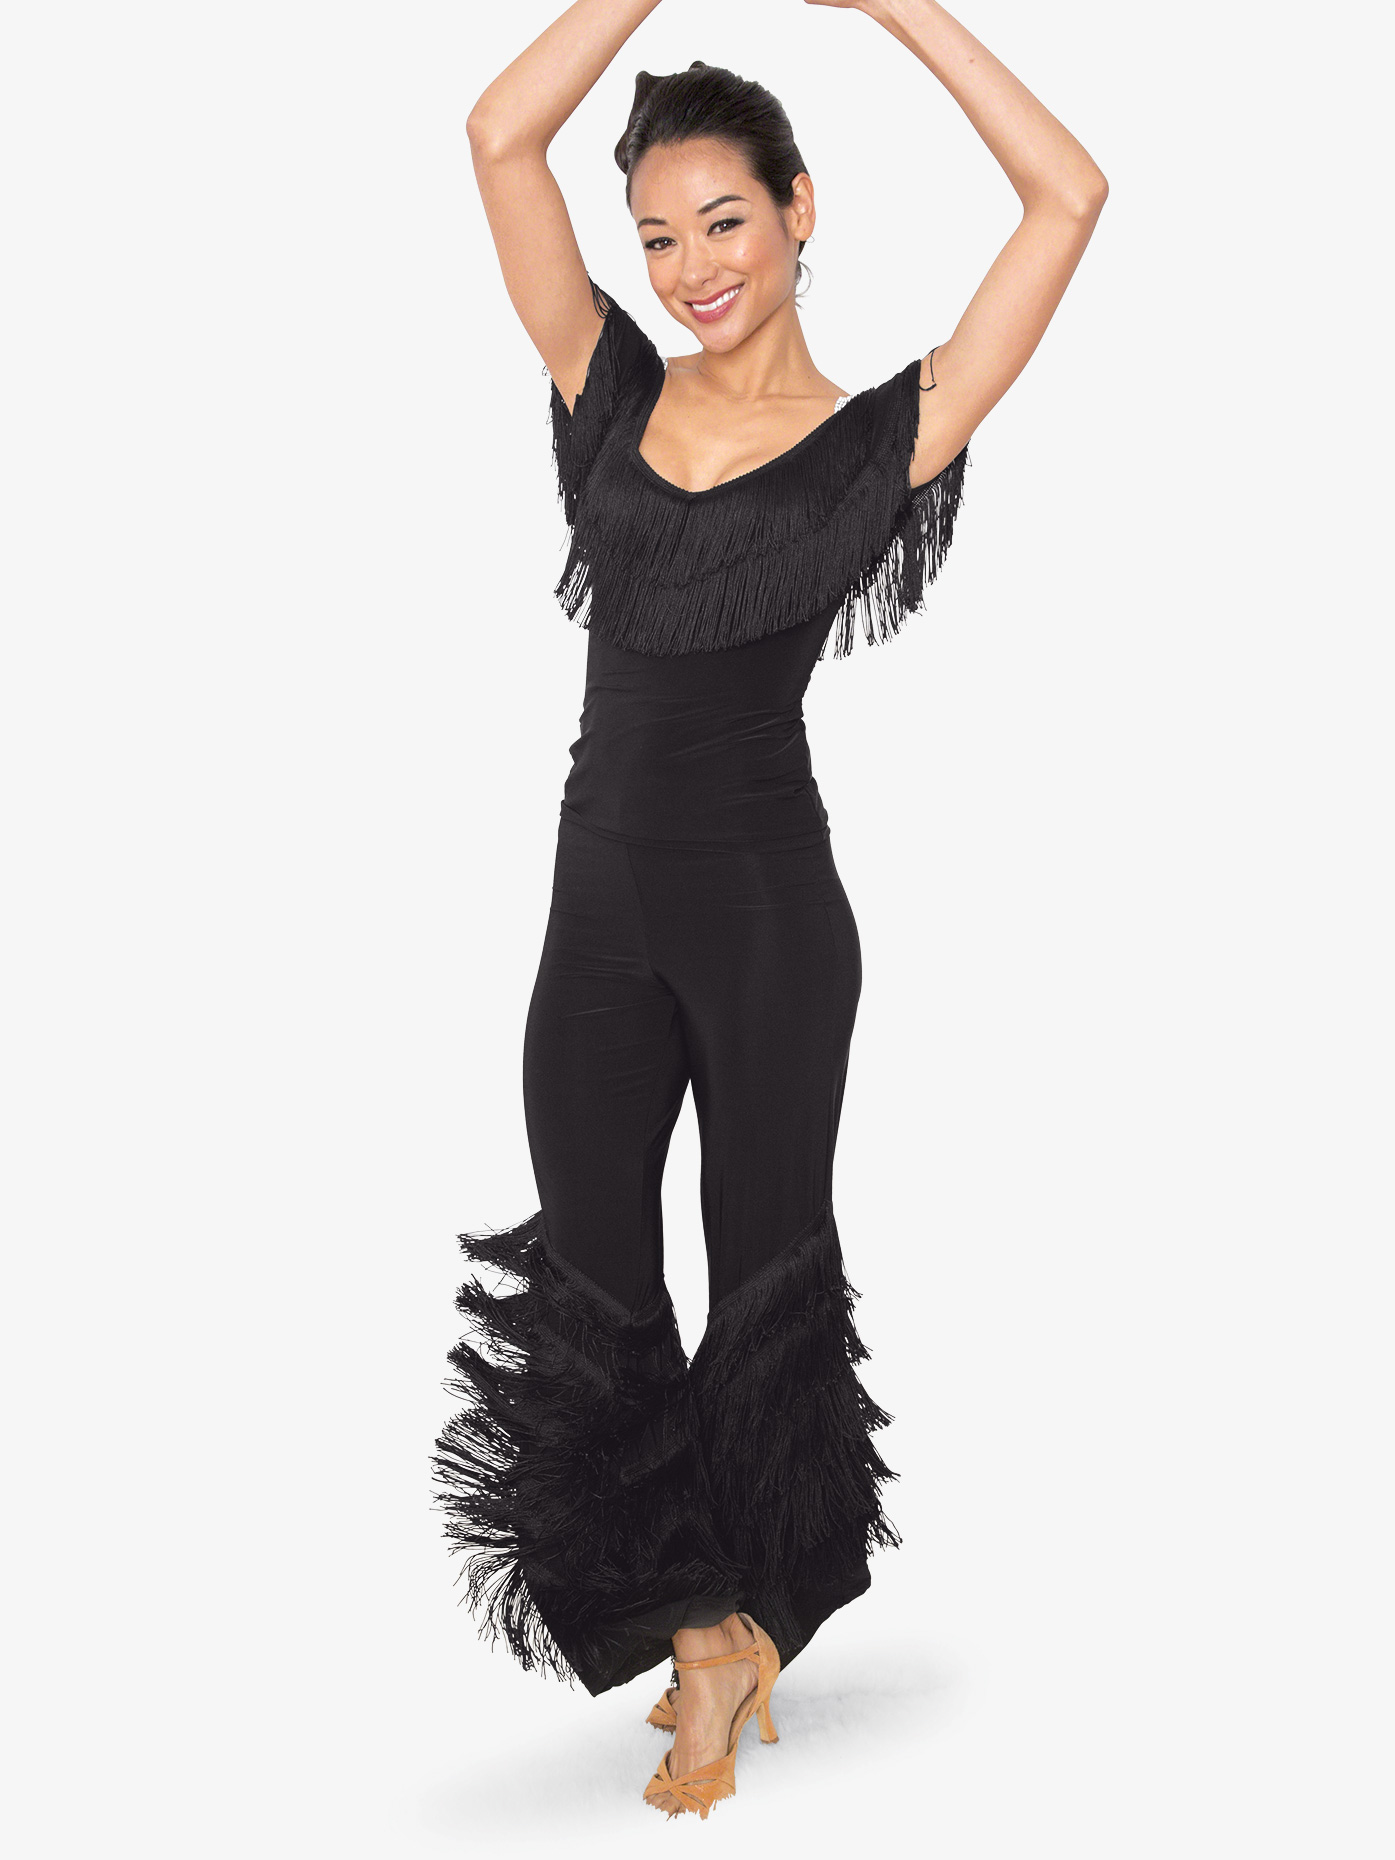 Dance America Womens Diagonal Fringe Ballroom Dance Pants P804